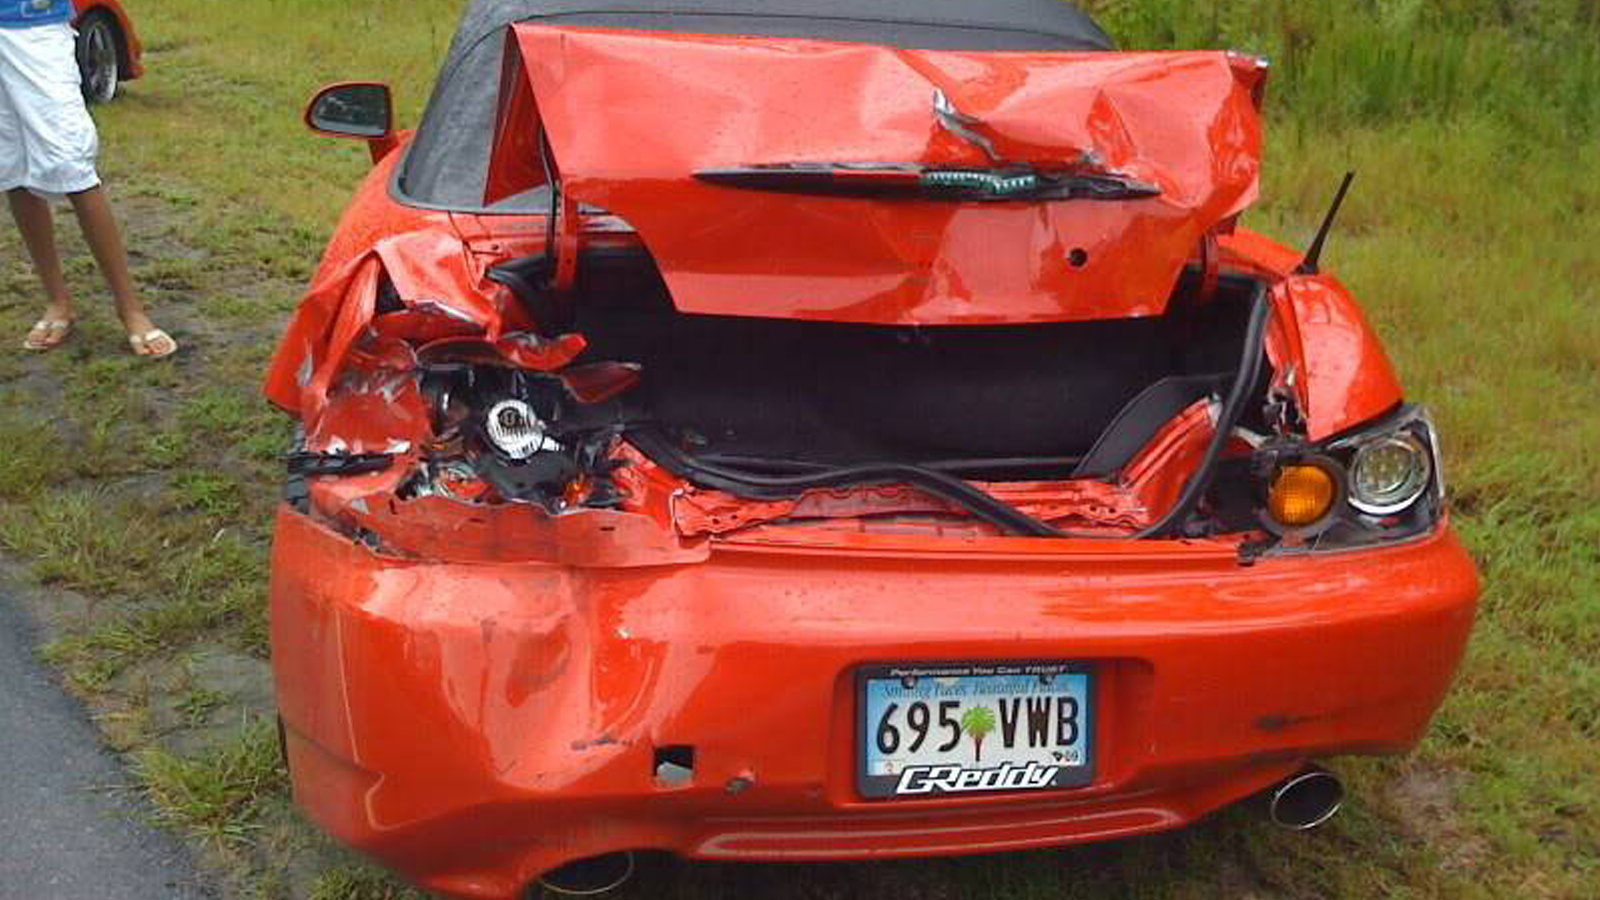 What to Consider If Your Car is Totaled